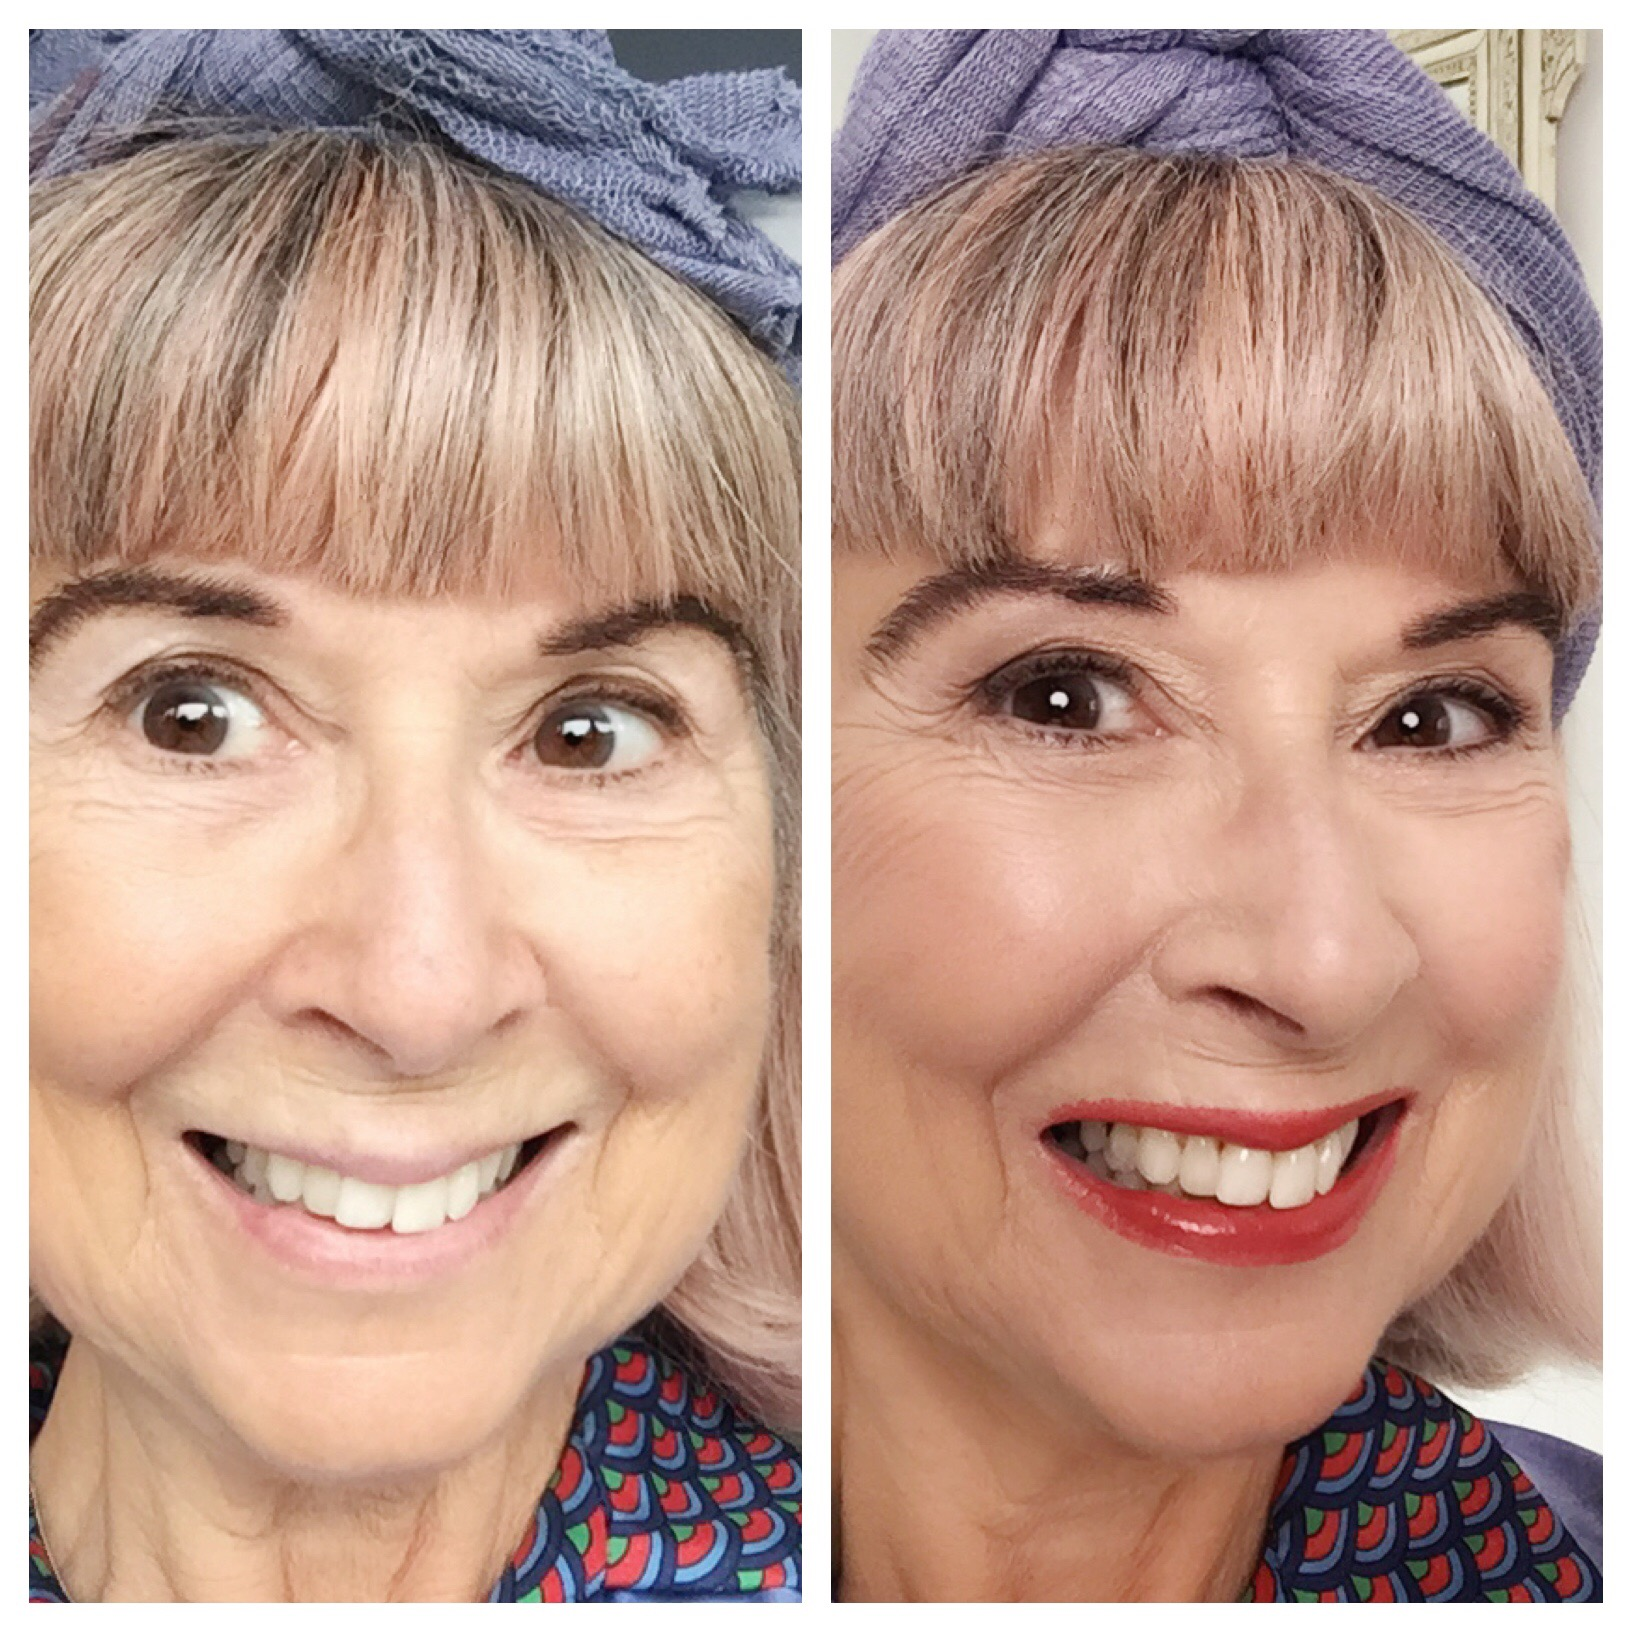 Over50s makeup - before & after